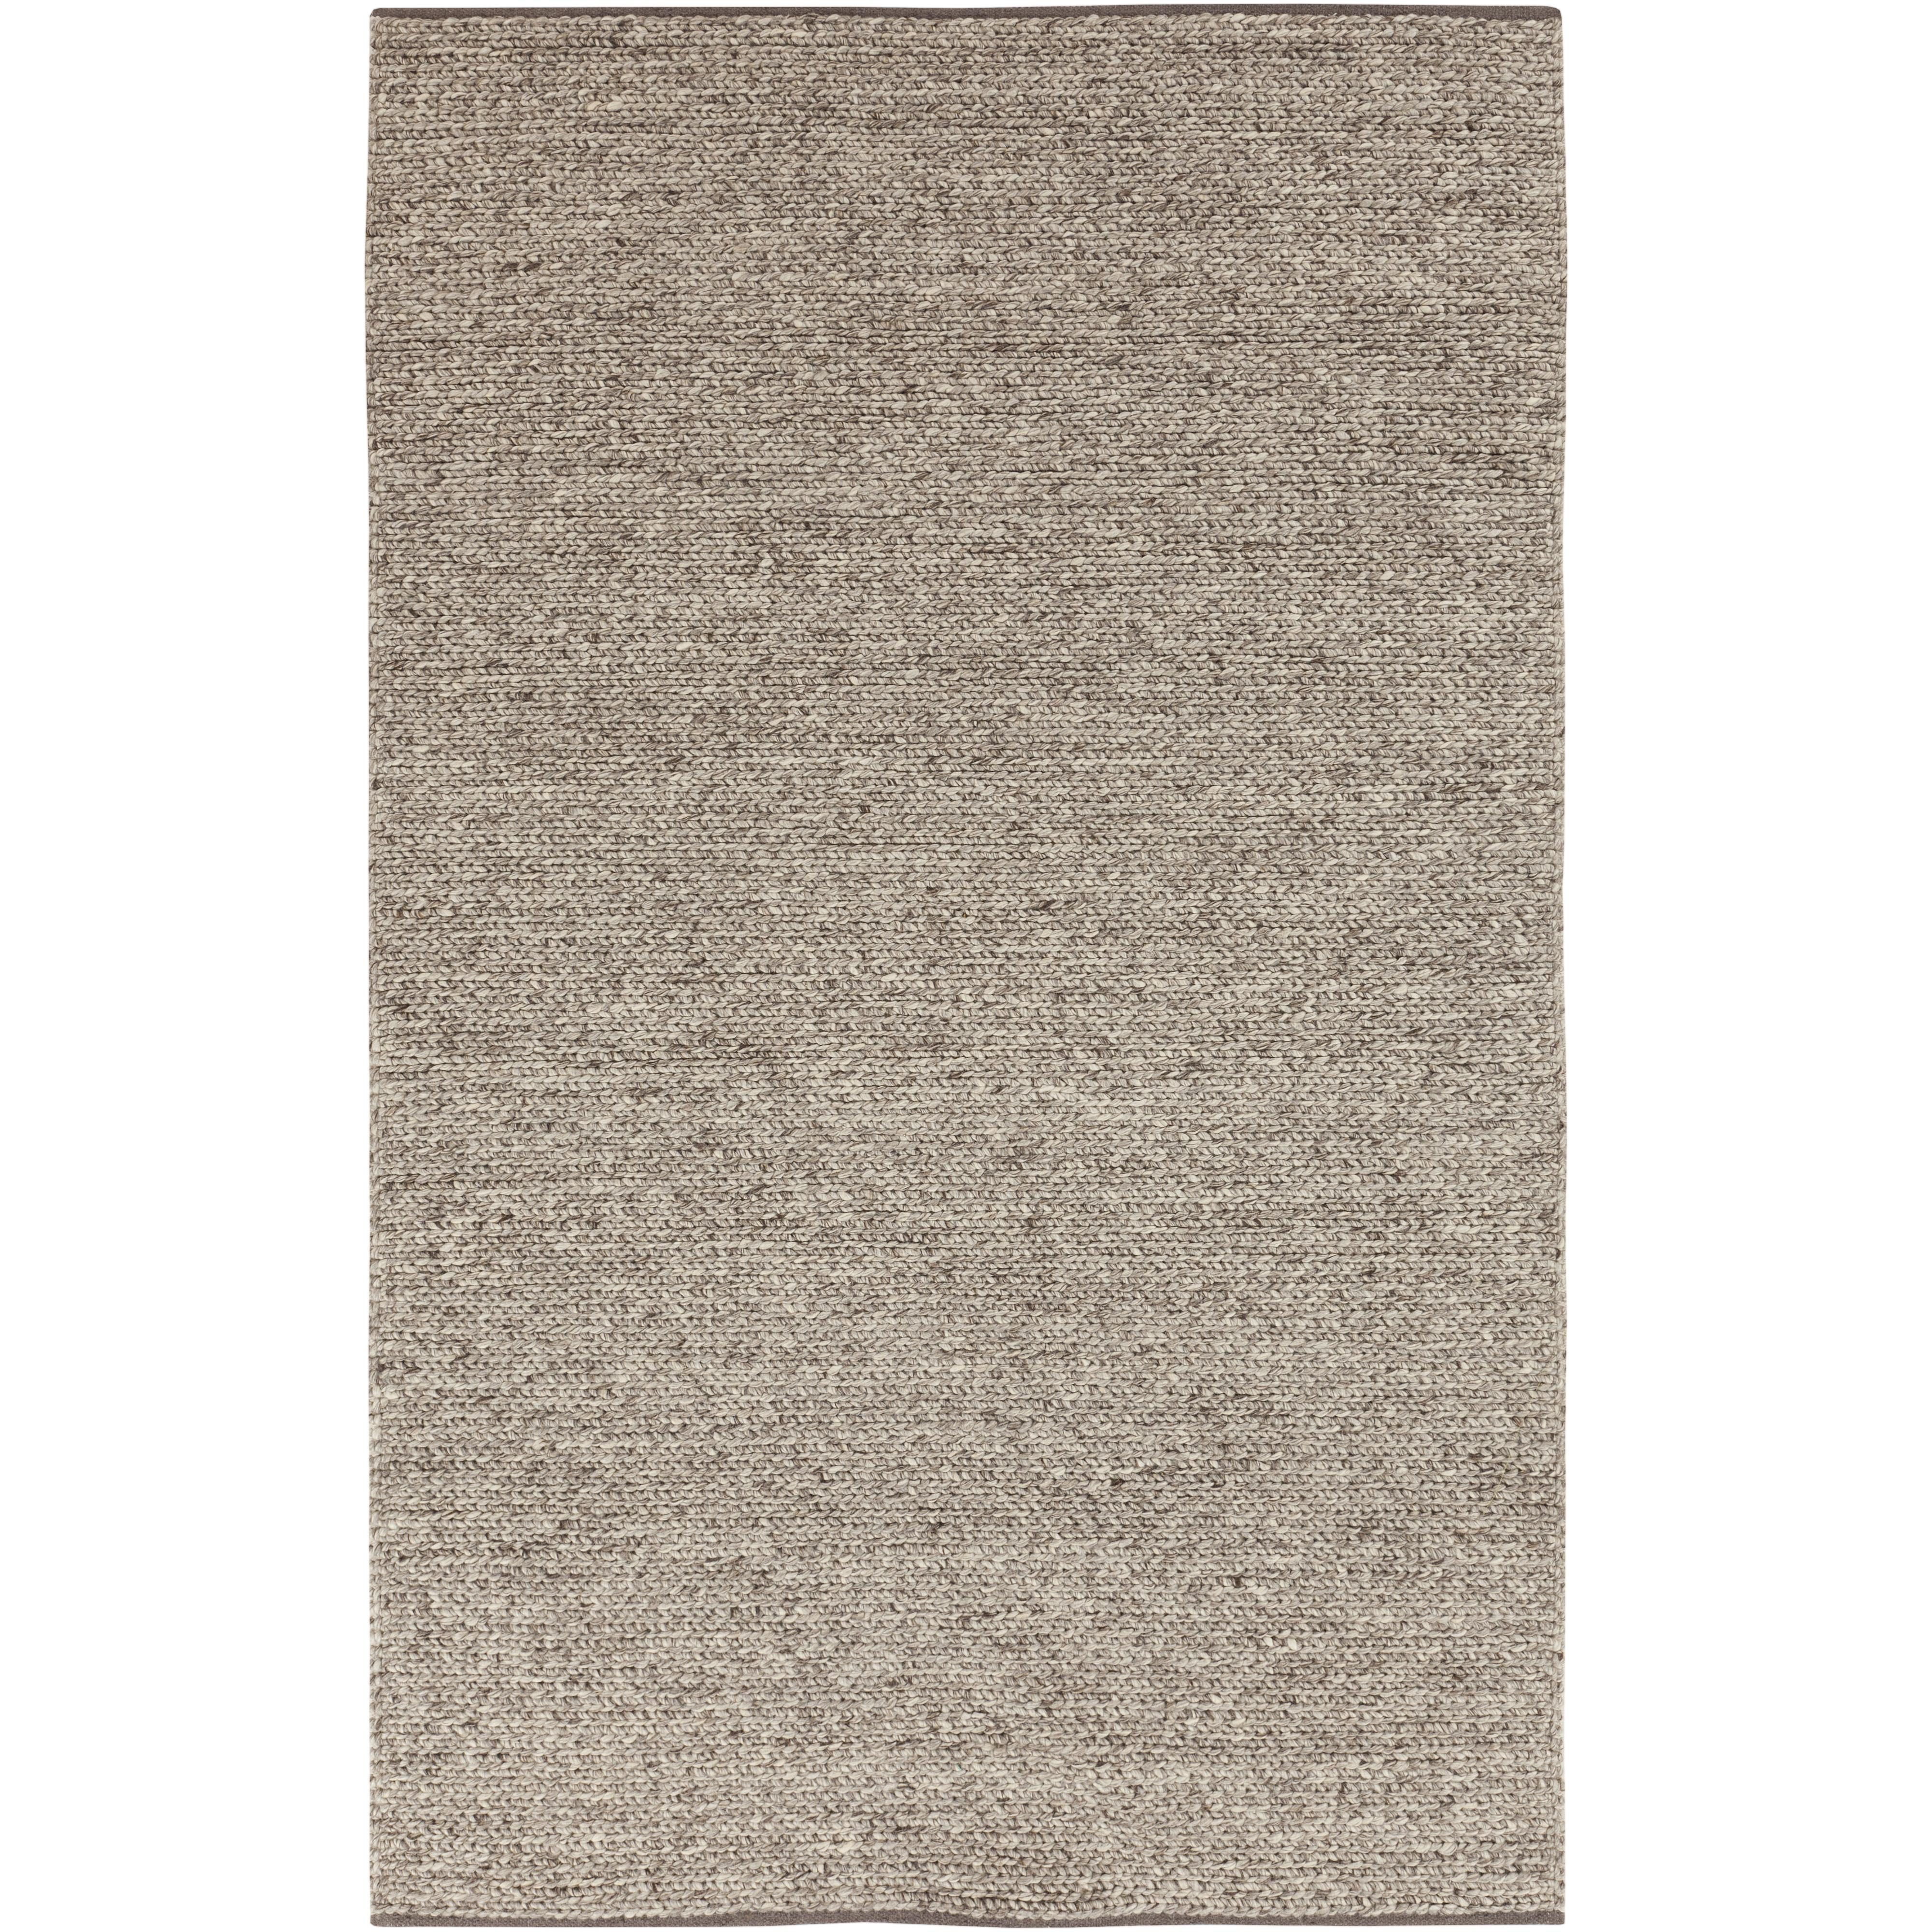 Toccoa 5' x 8' by Ruby-Gordon Accents at Ruby Gordon Home